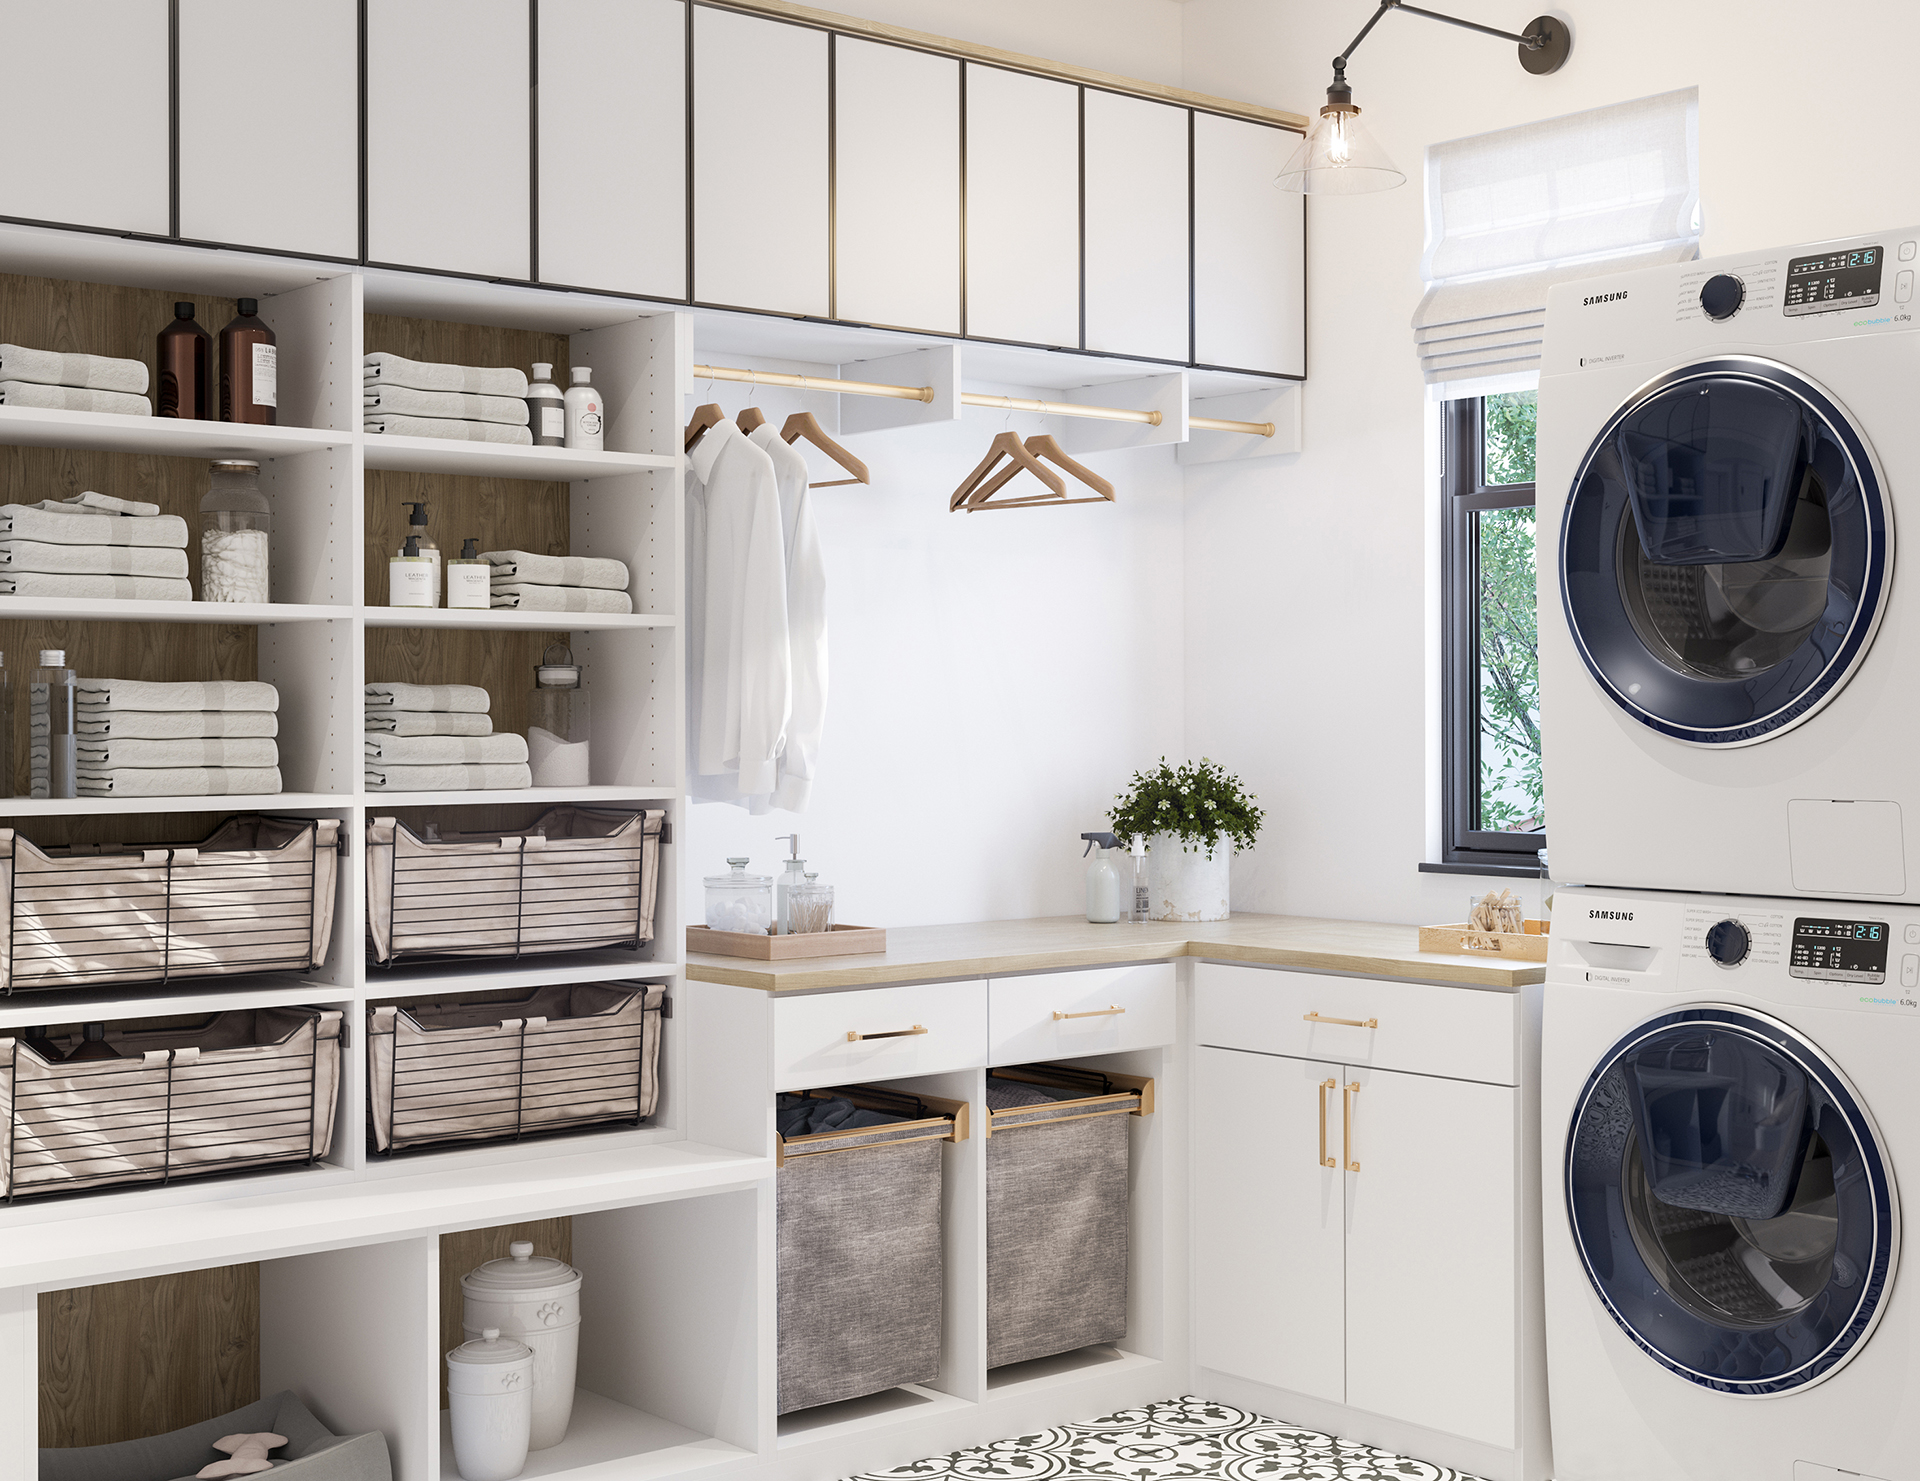 laundry room cabinets storage ideas california closets rh californiaclosets com laundry room storage ideas ikea laundry room storage ideas pinterest